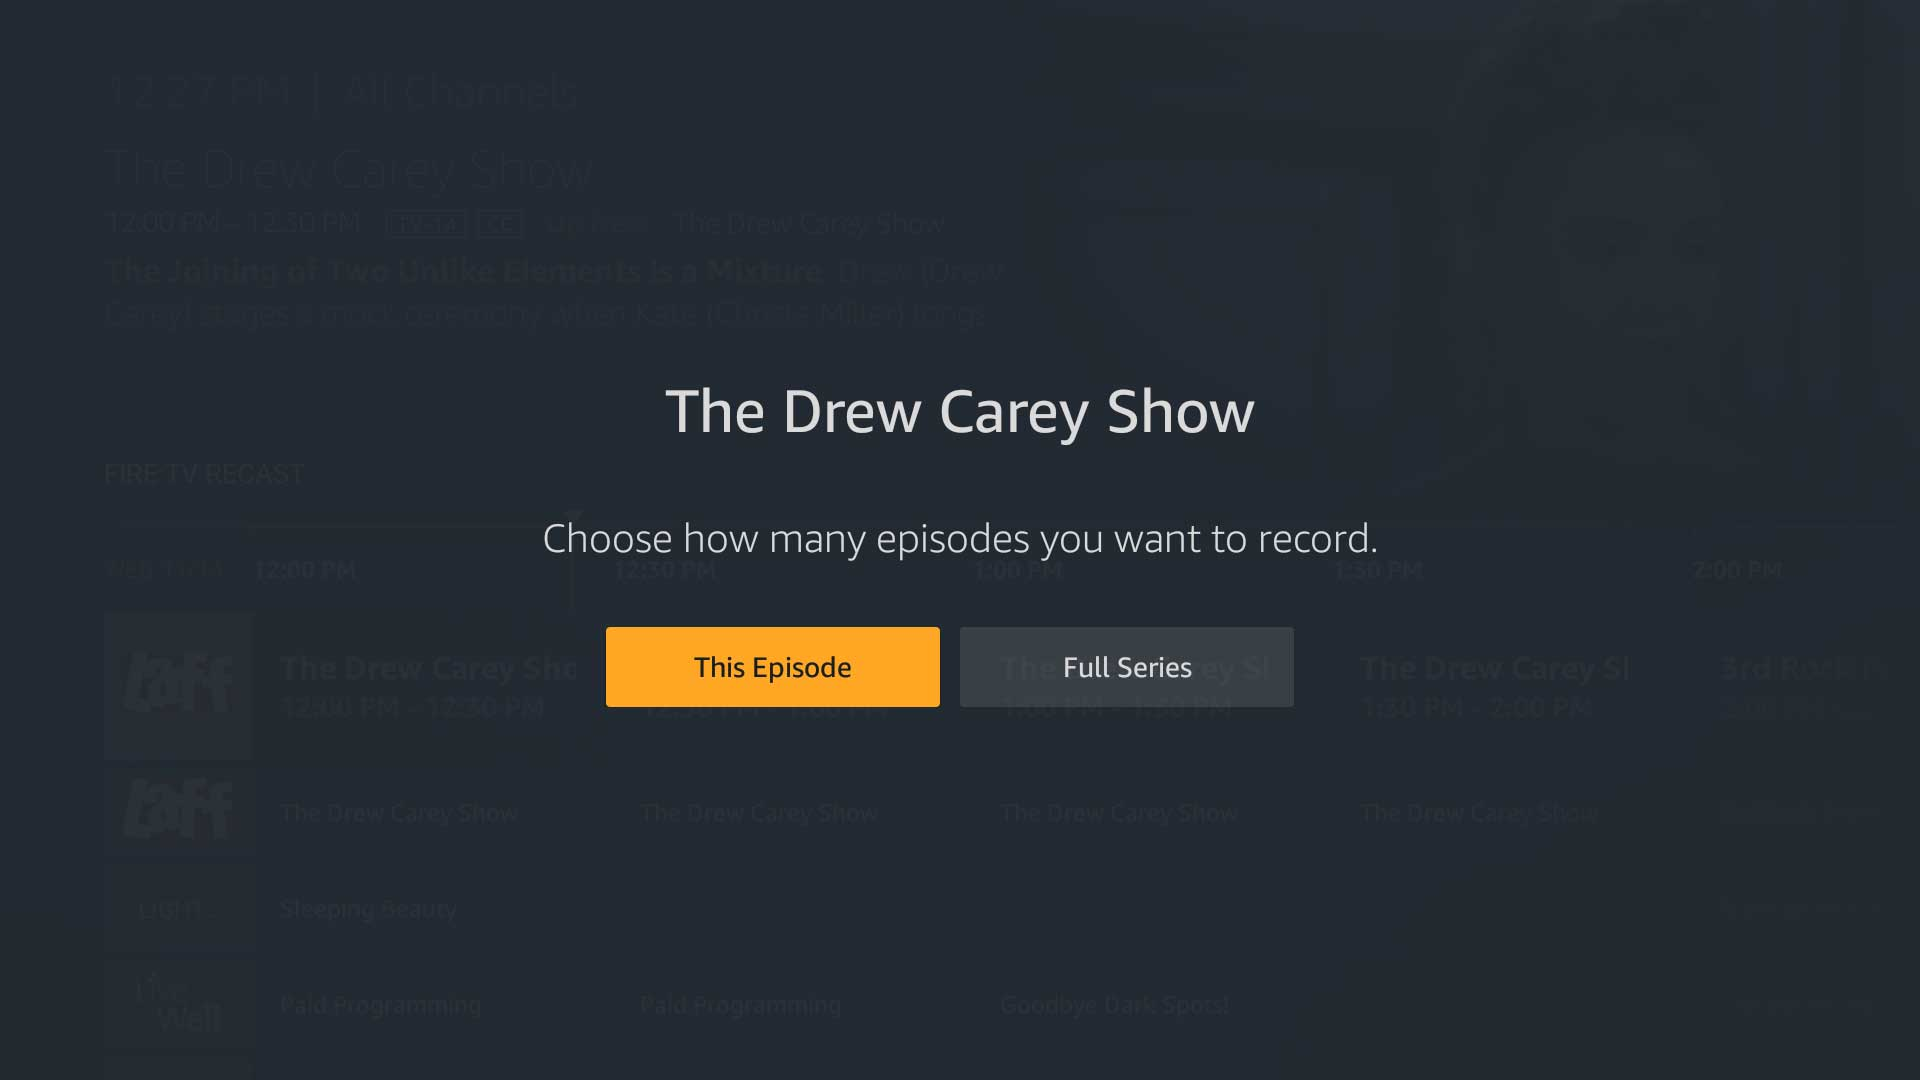 Best options for recording tv shows